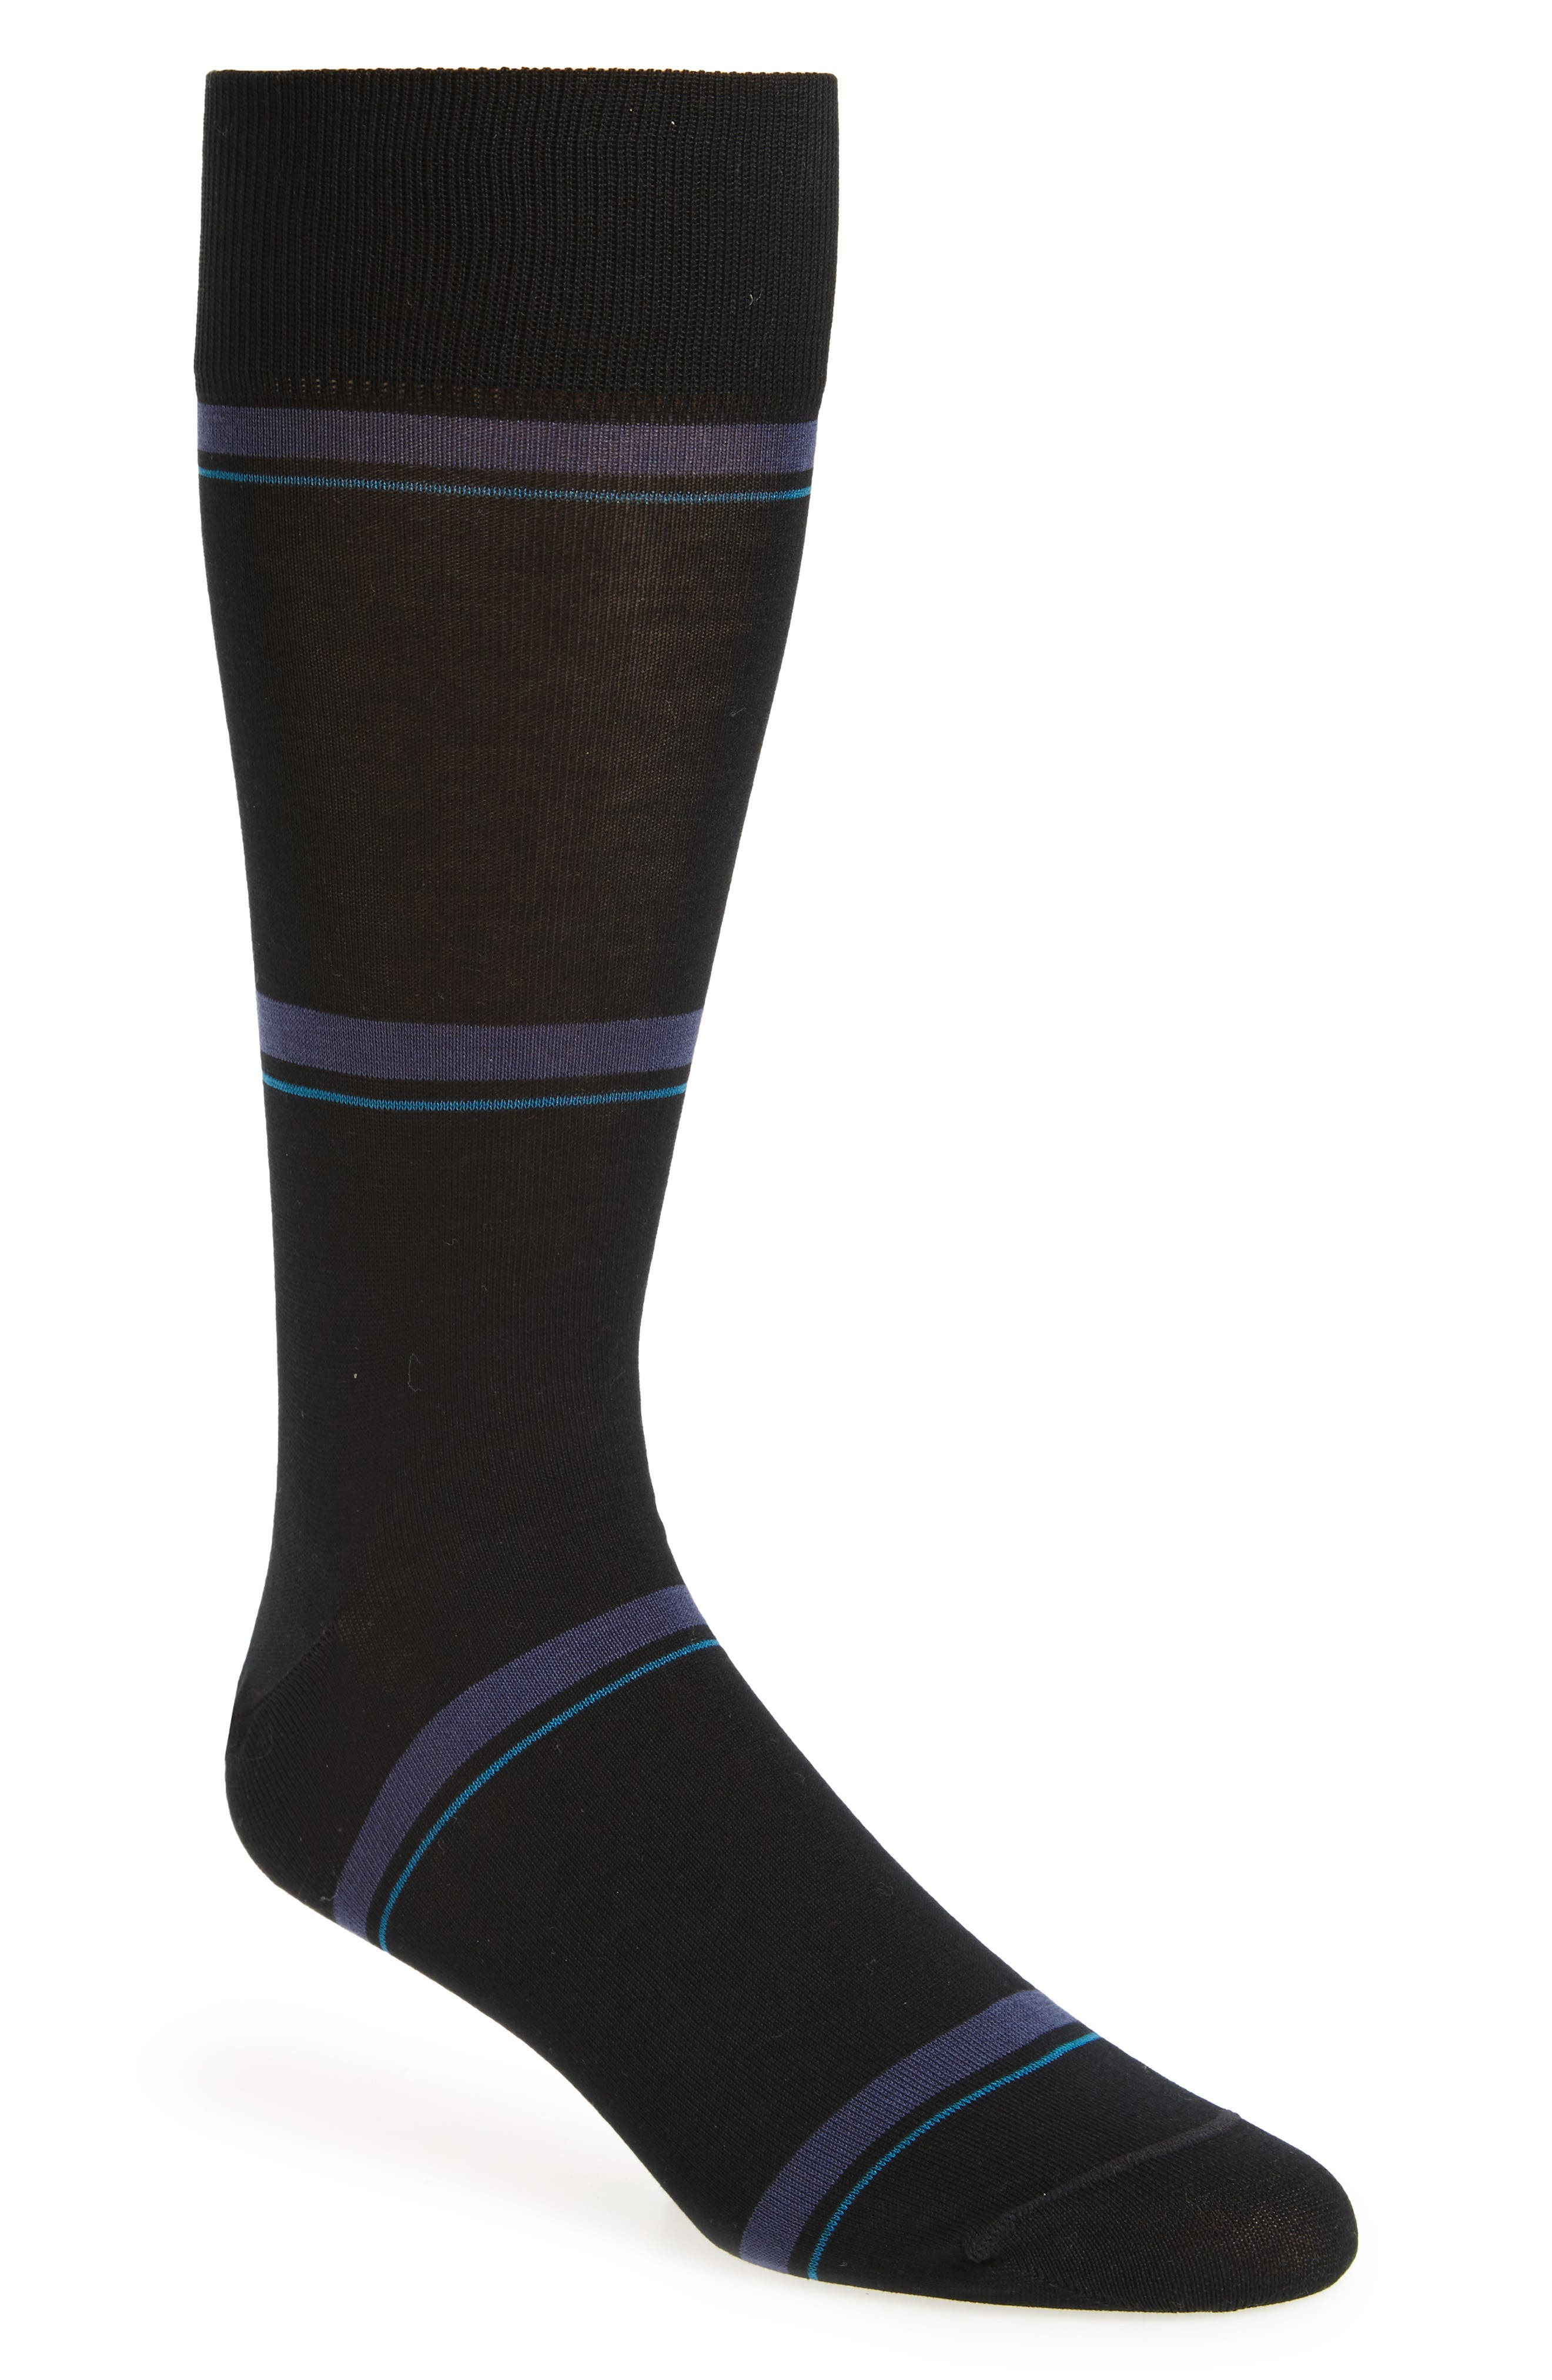 Double Banded Socks,                         Main,                         color, 001